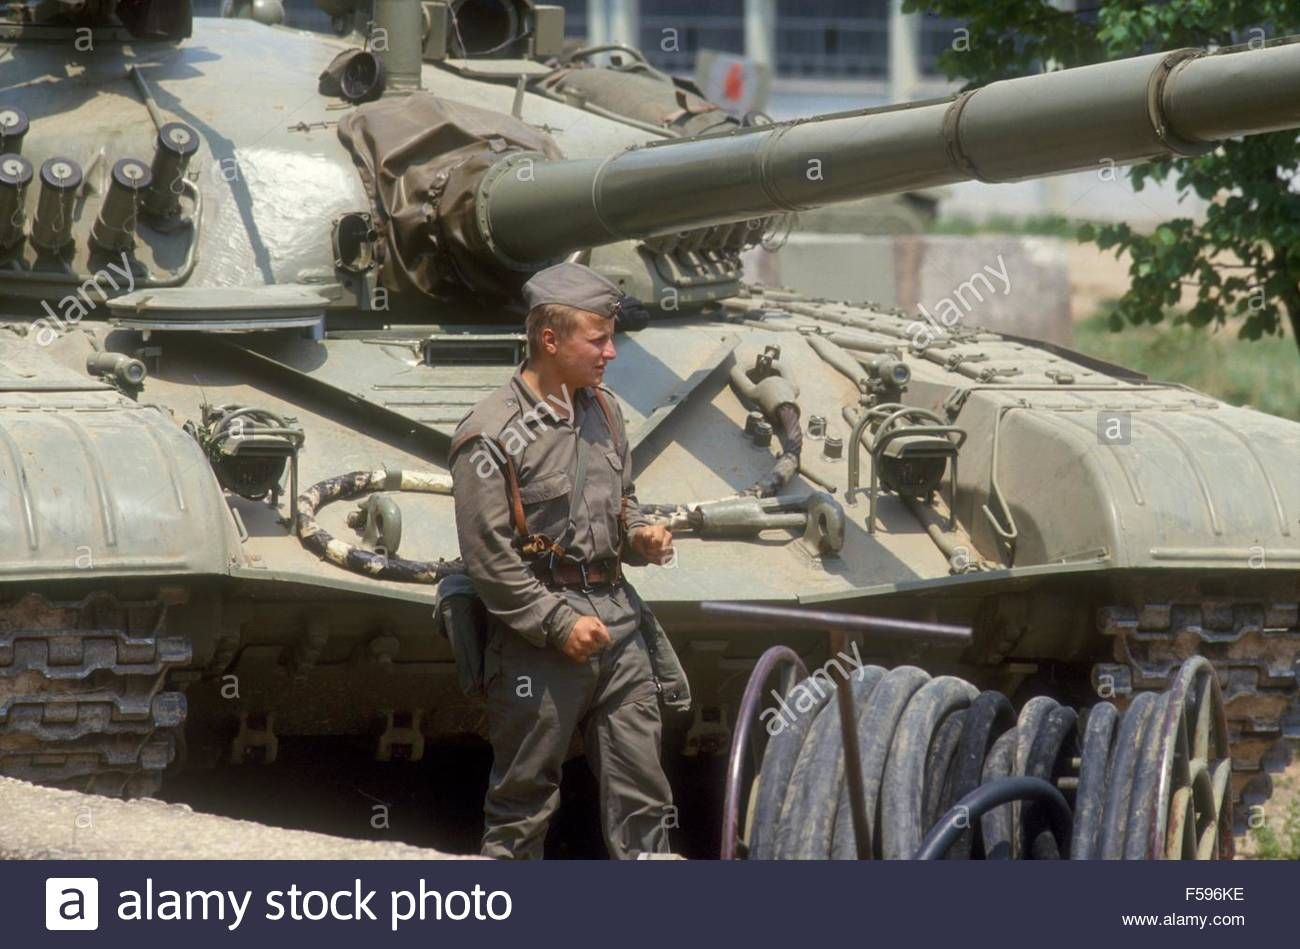 Stock Photo - War in ex Yugoslavia, Serbian tanks blocked in their barracks besieged by Slovenian militia during the independence war of July 1991